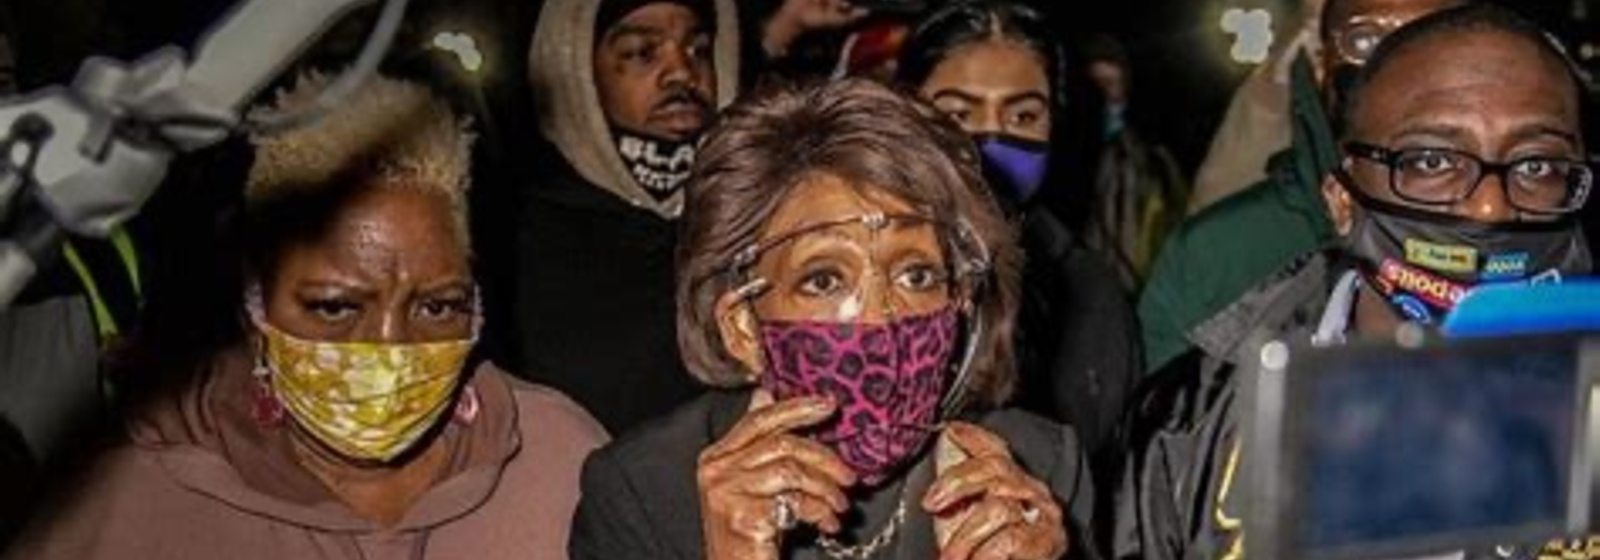 Democrat Maxine Waters Encourages Rioting, Republicans Call for Expulsion